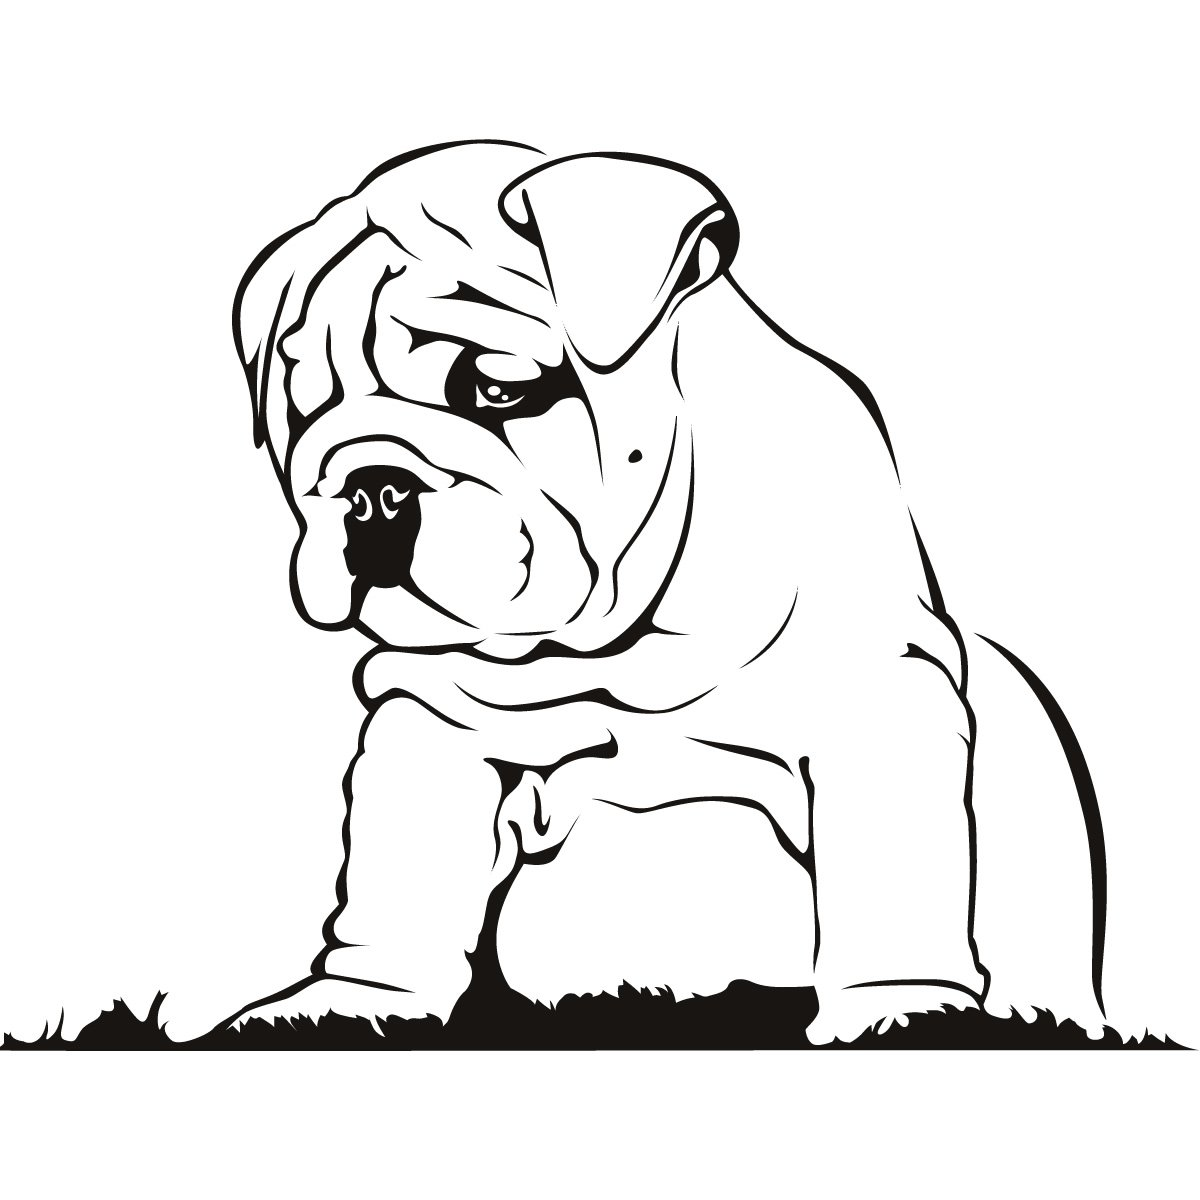 Bulldog puppies clipart svg black and white Bulldog Puppy Cliparts - Cliparts Zone svg black and white